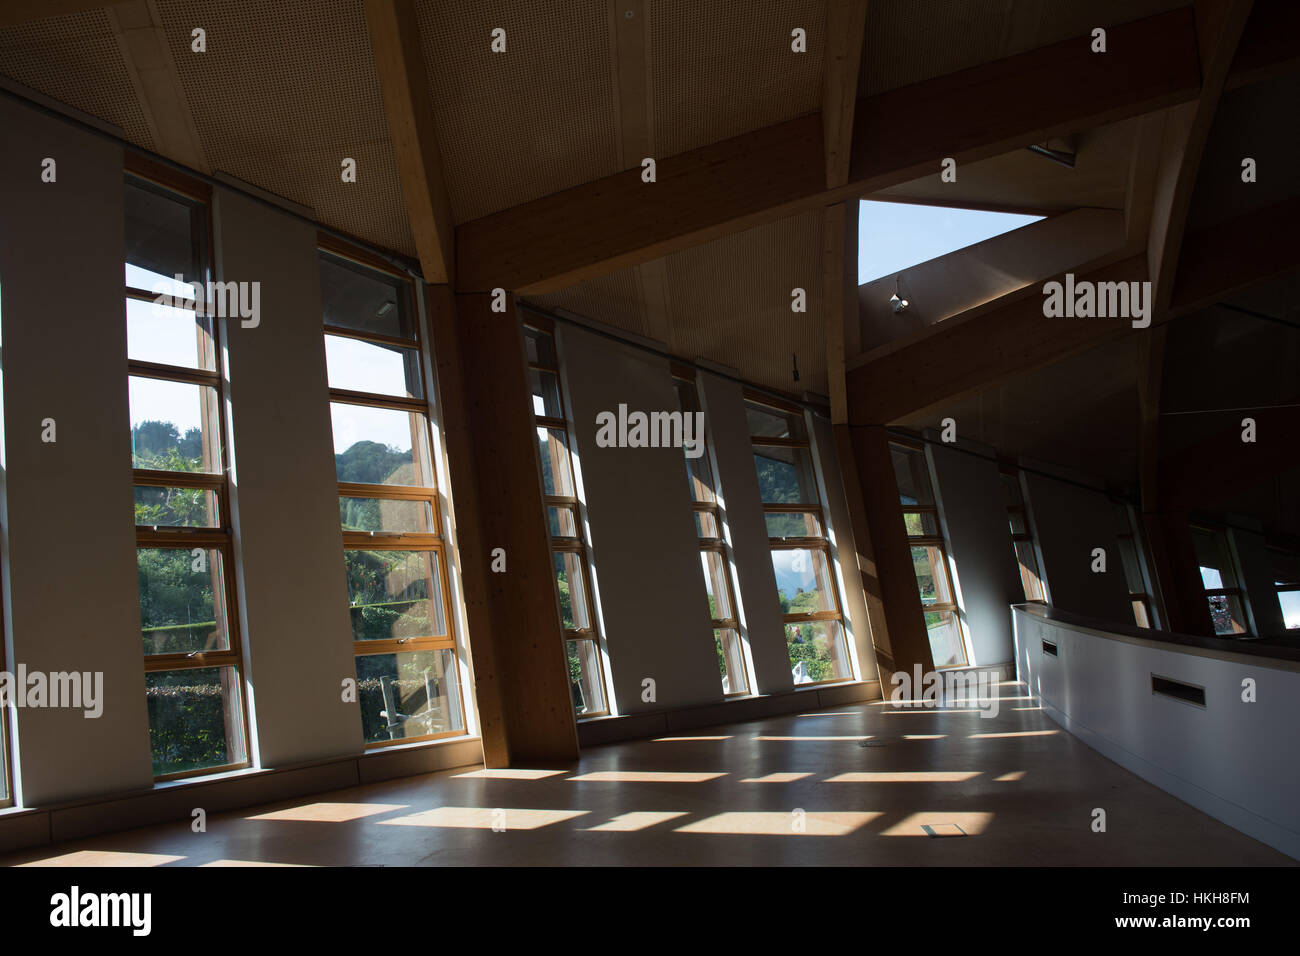 upstairs of The Core building, Eden Project, Cornwall - Stock Image